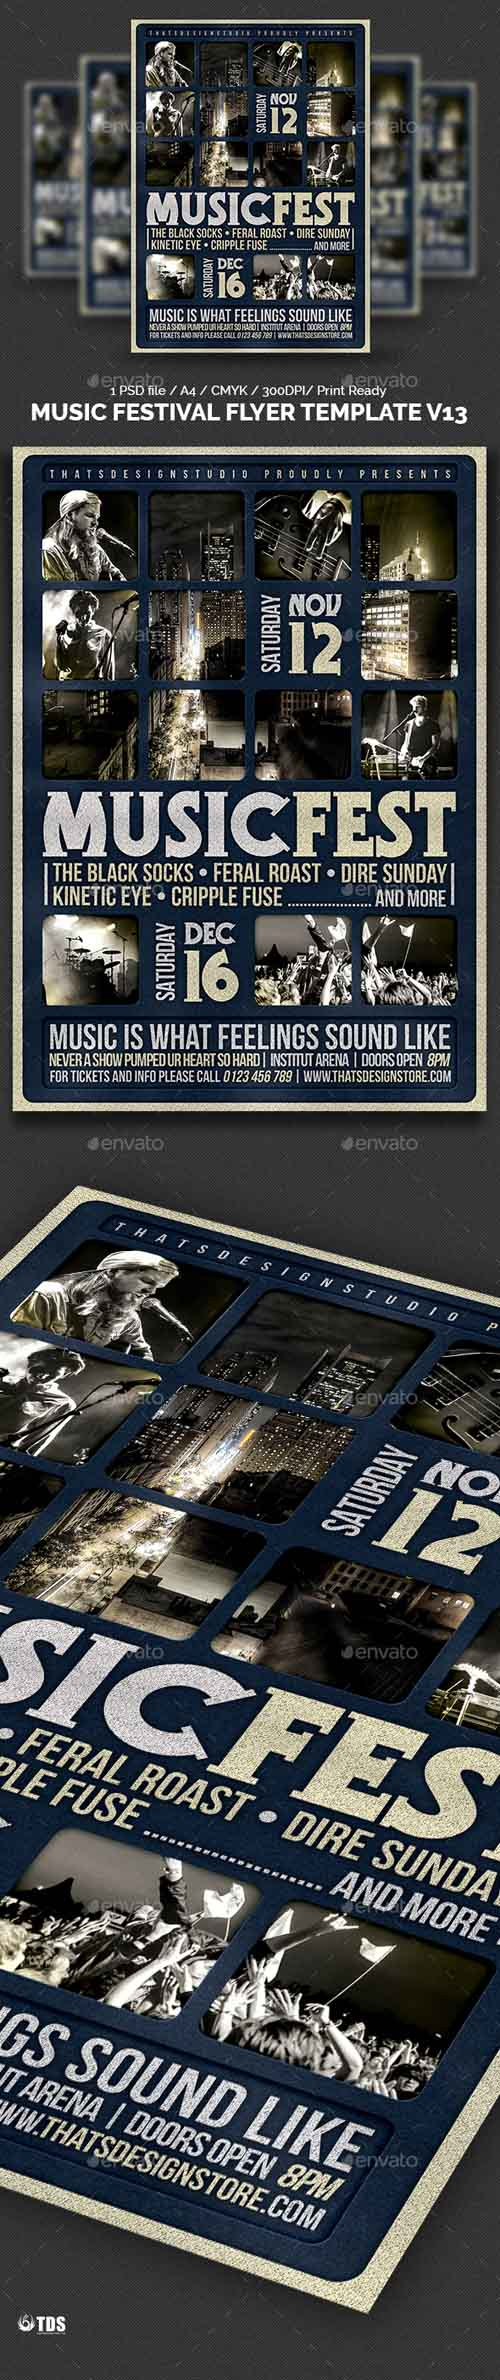 Music Festival Flyer Template V13 14173238